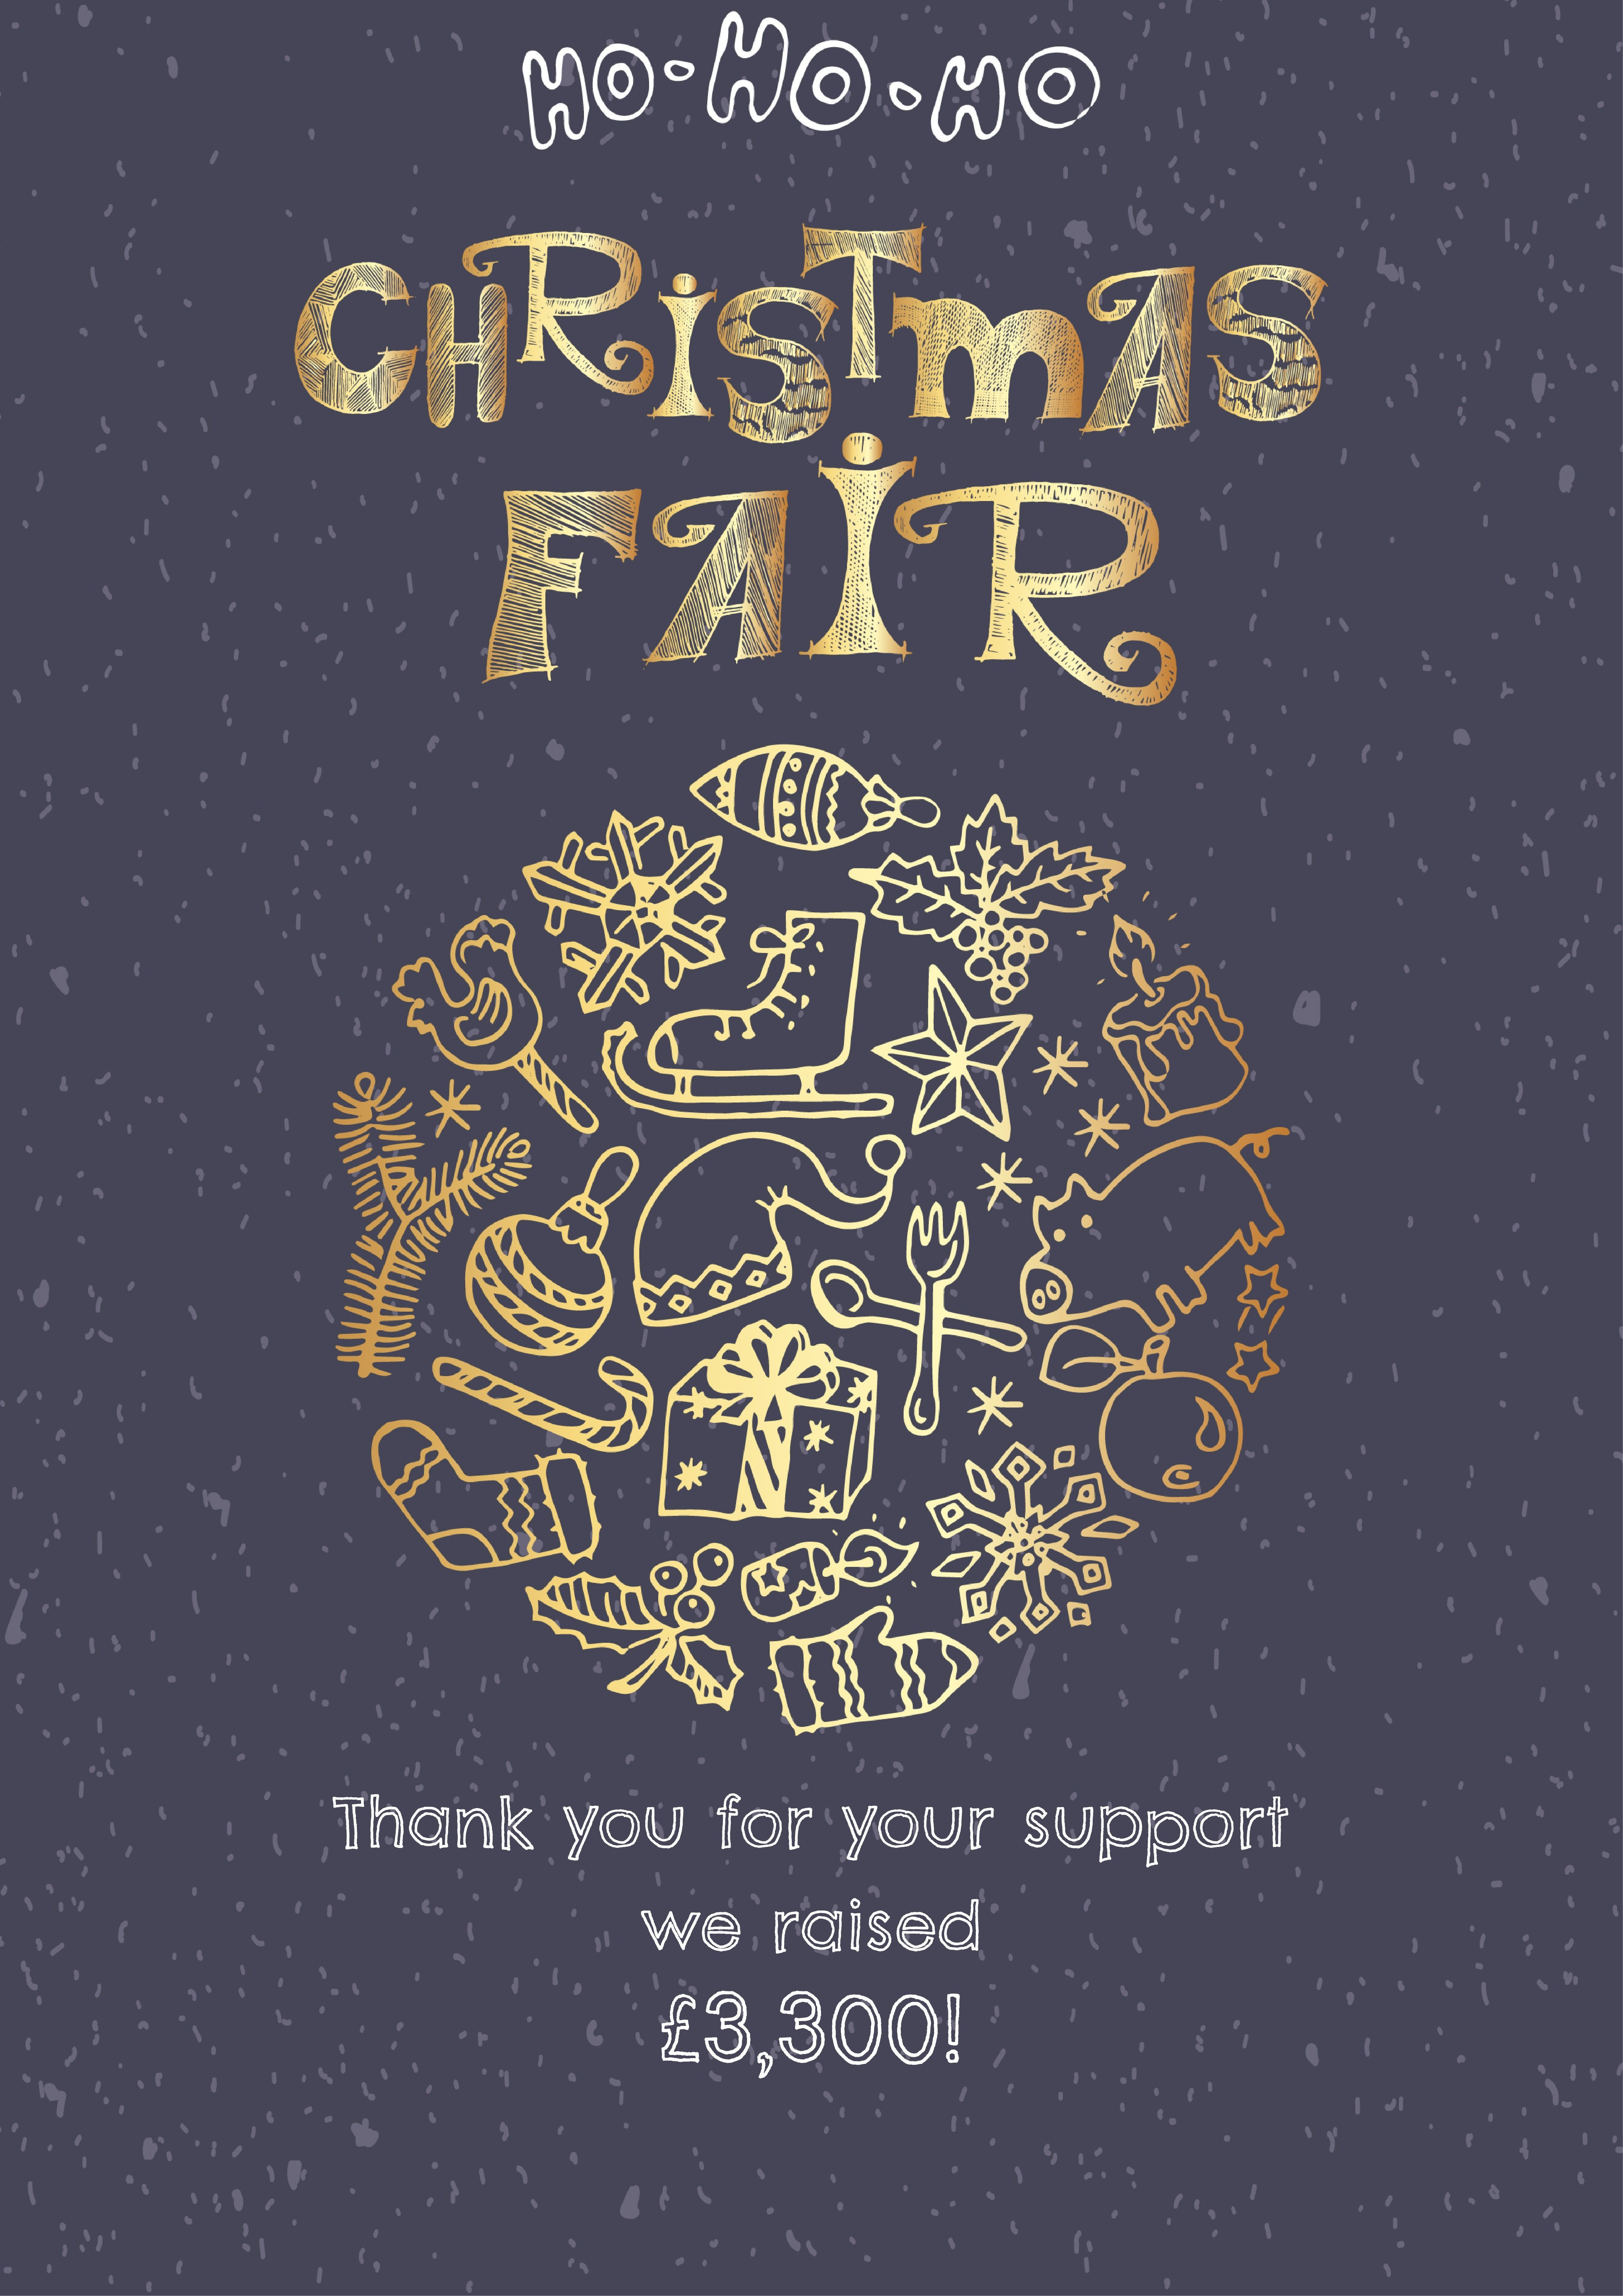 Christmas Fair Raises £3,300!